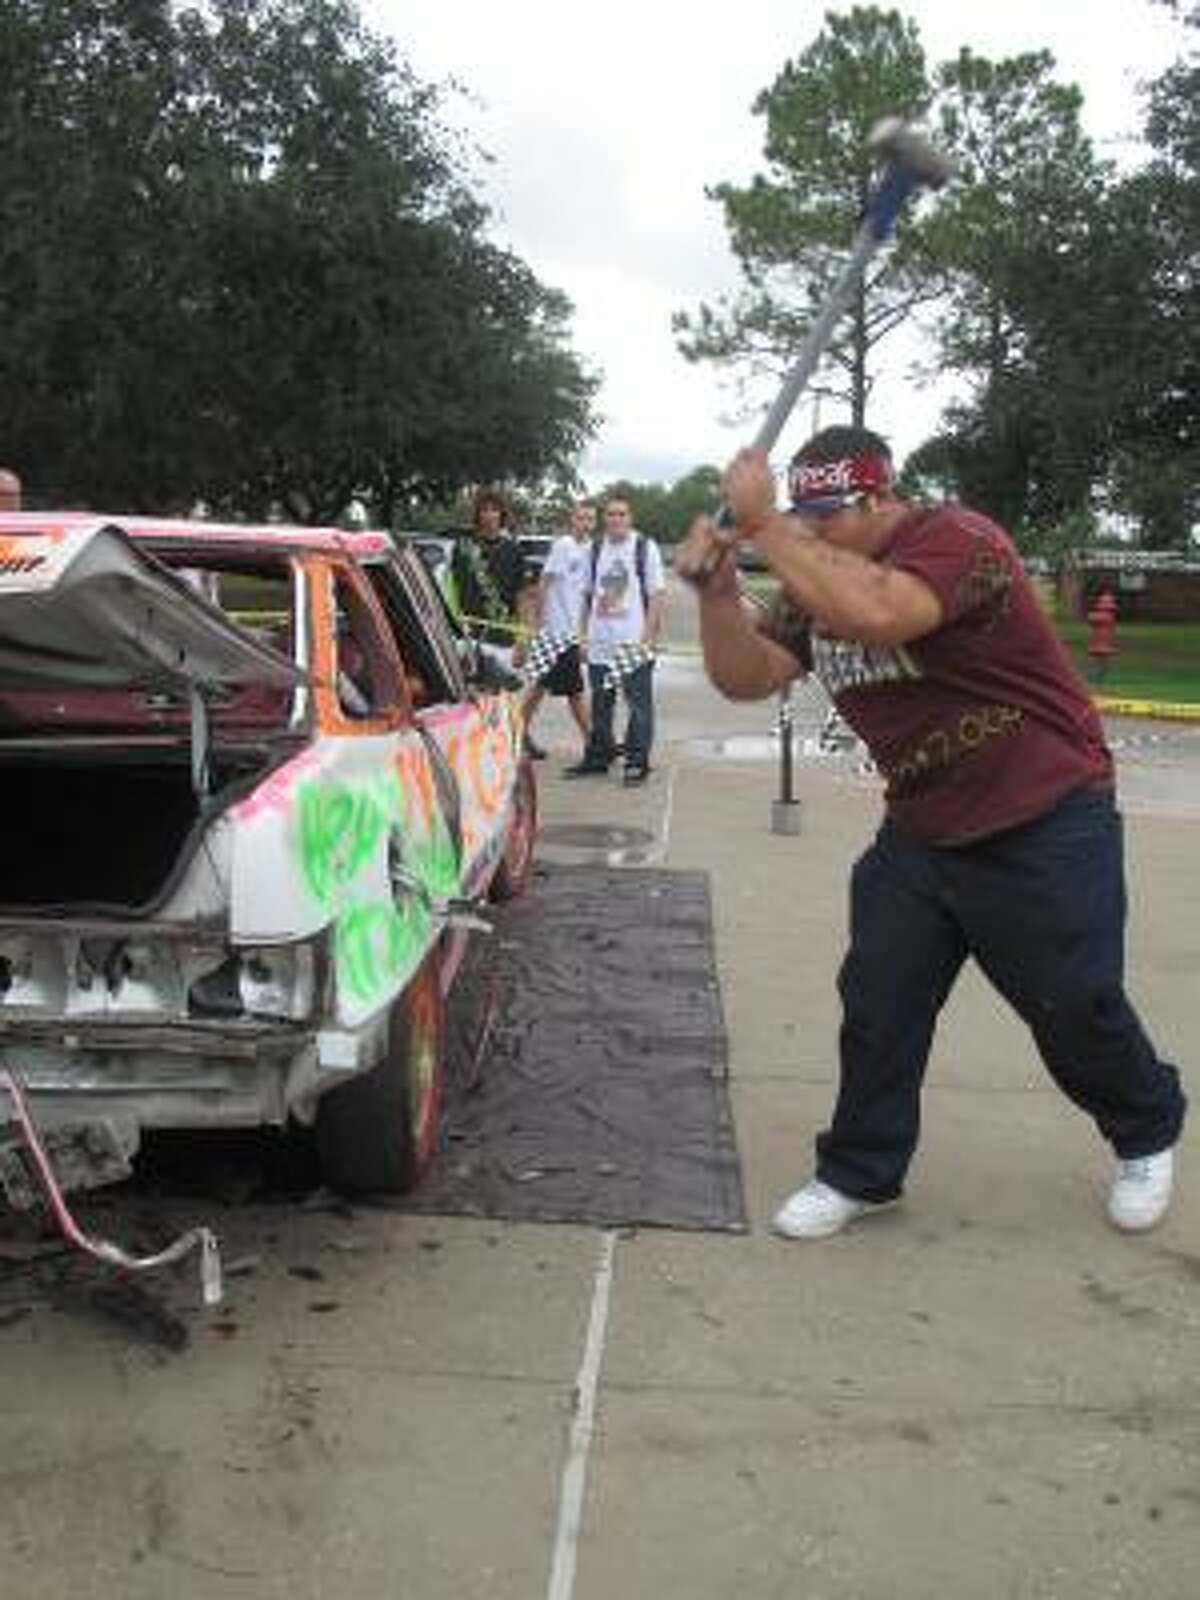 The car smash is always a popular option at the carnival for building spirit.